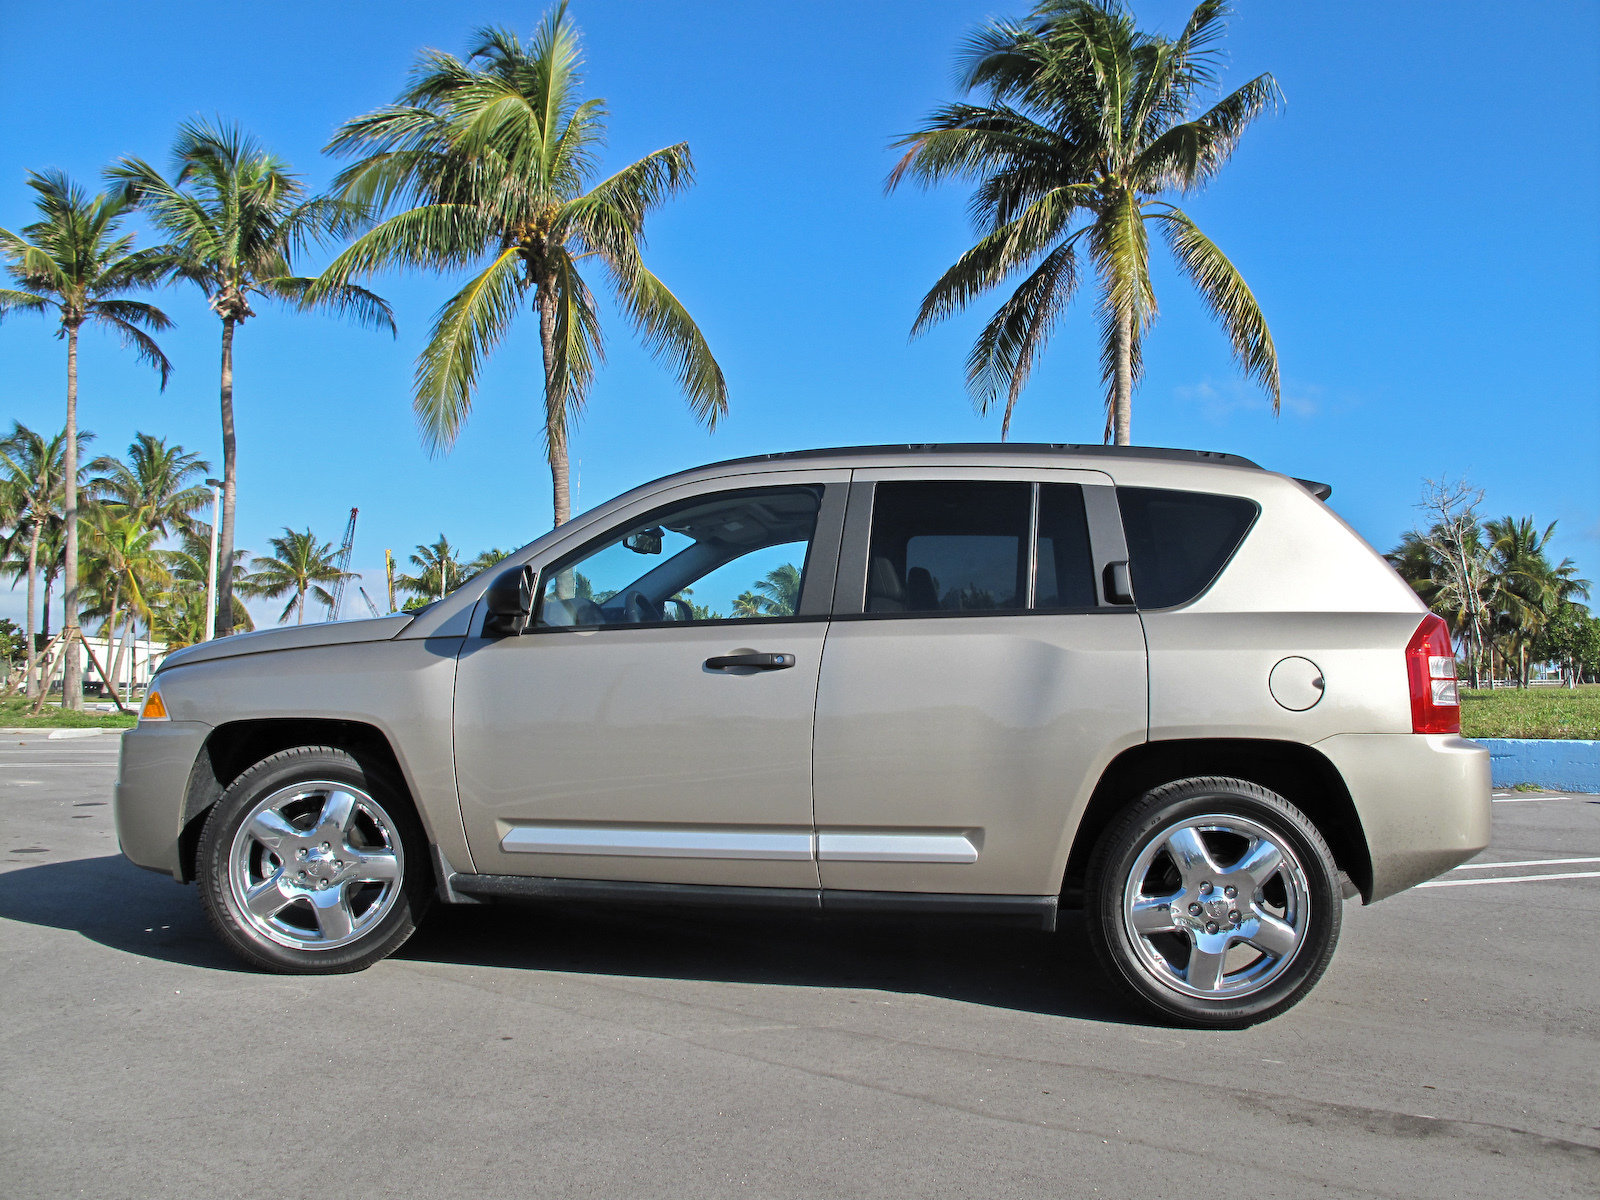 2009 jeep compass limited picture 288165 car review. Black Bedroom Furniture Sets. Home Design Ideas